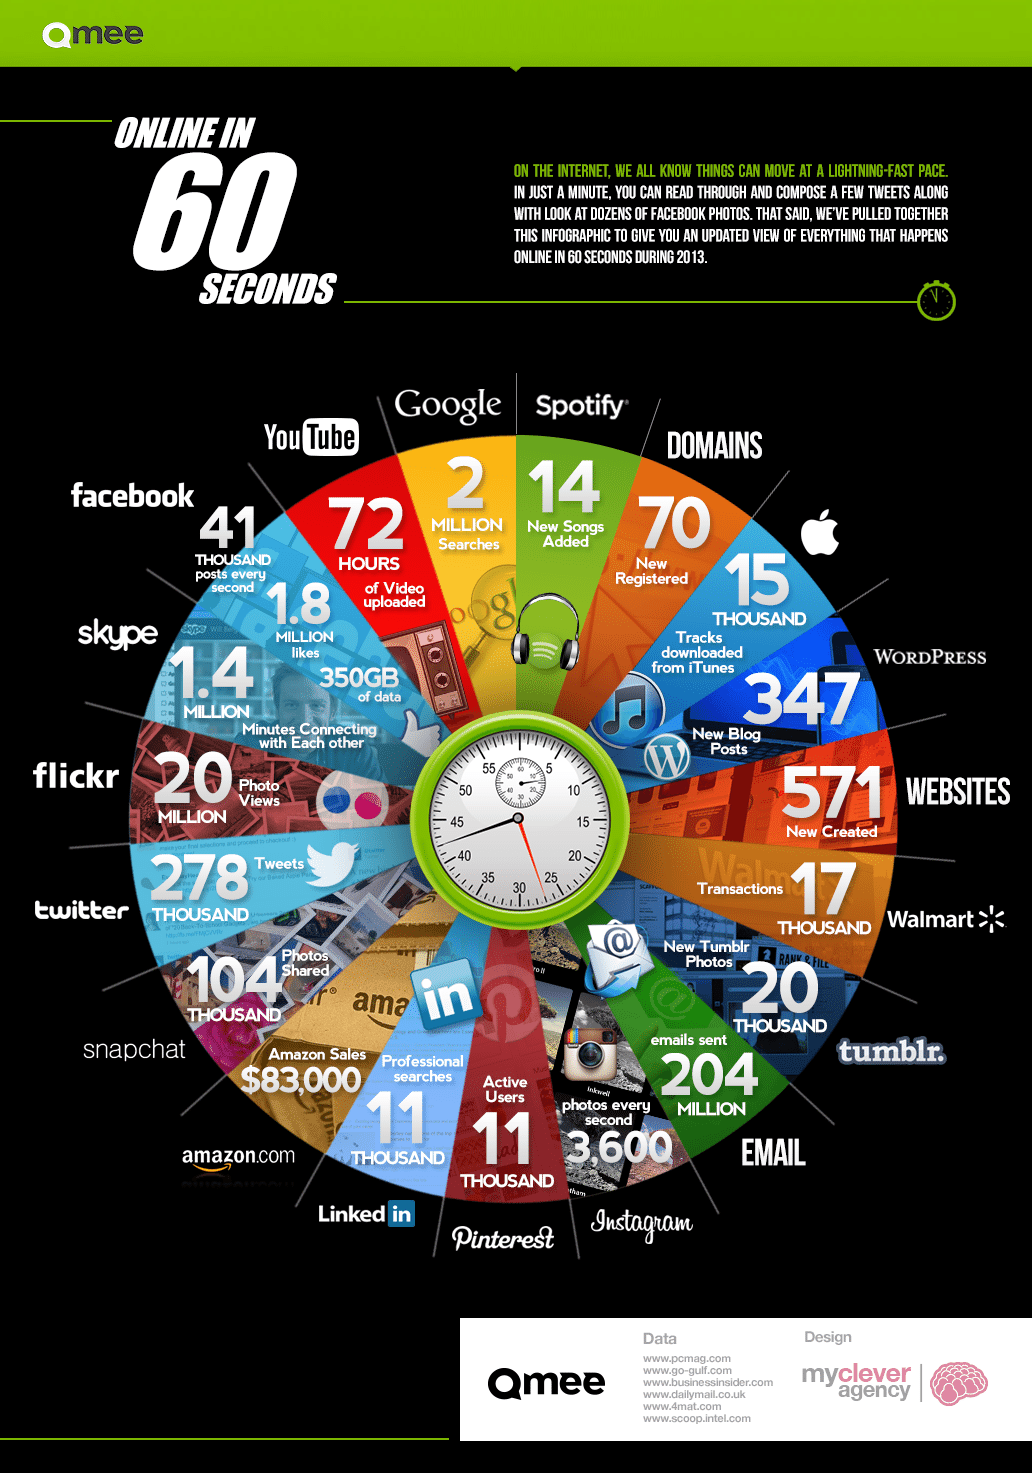 60 seconds of internet - wat gebeurt er online?